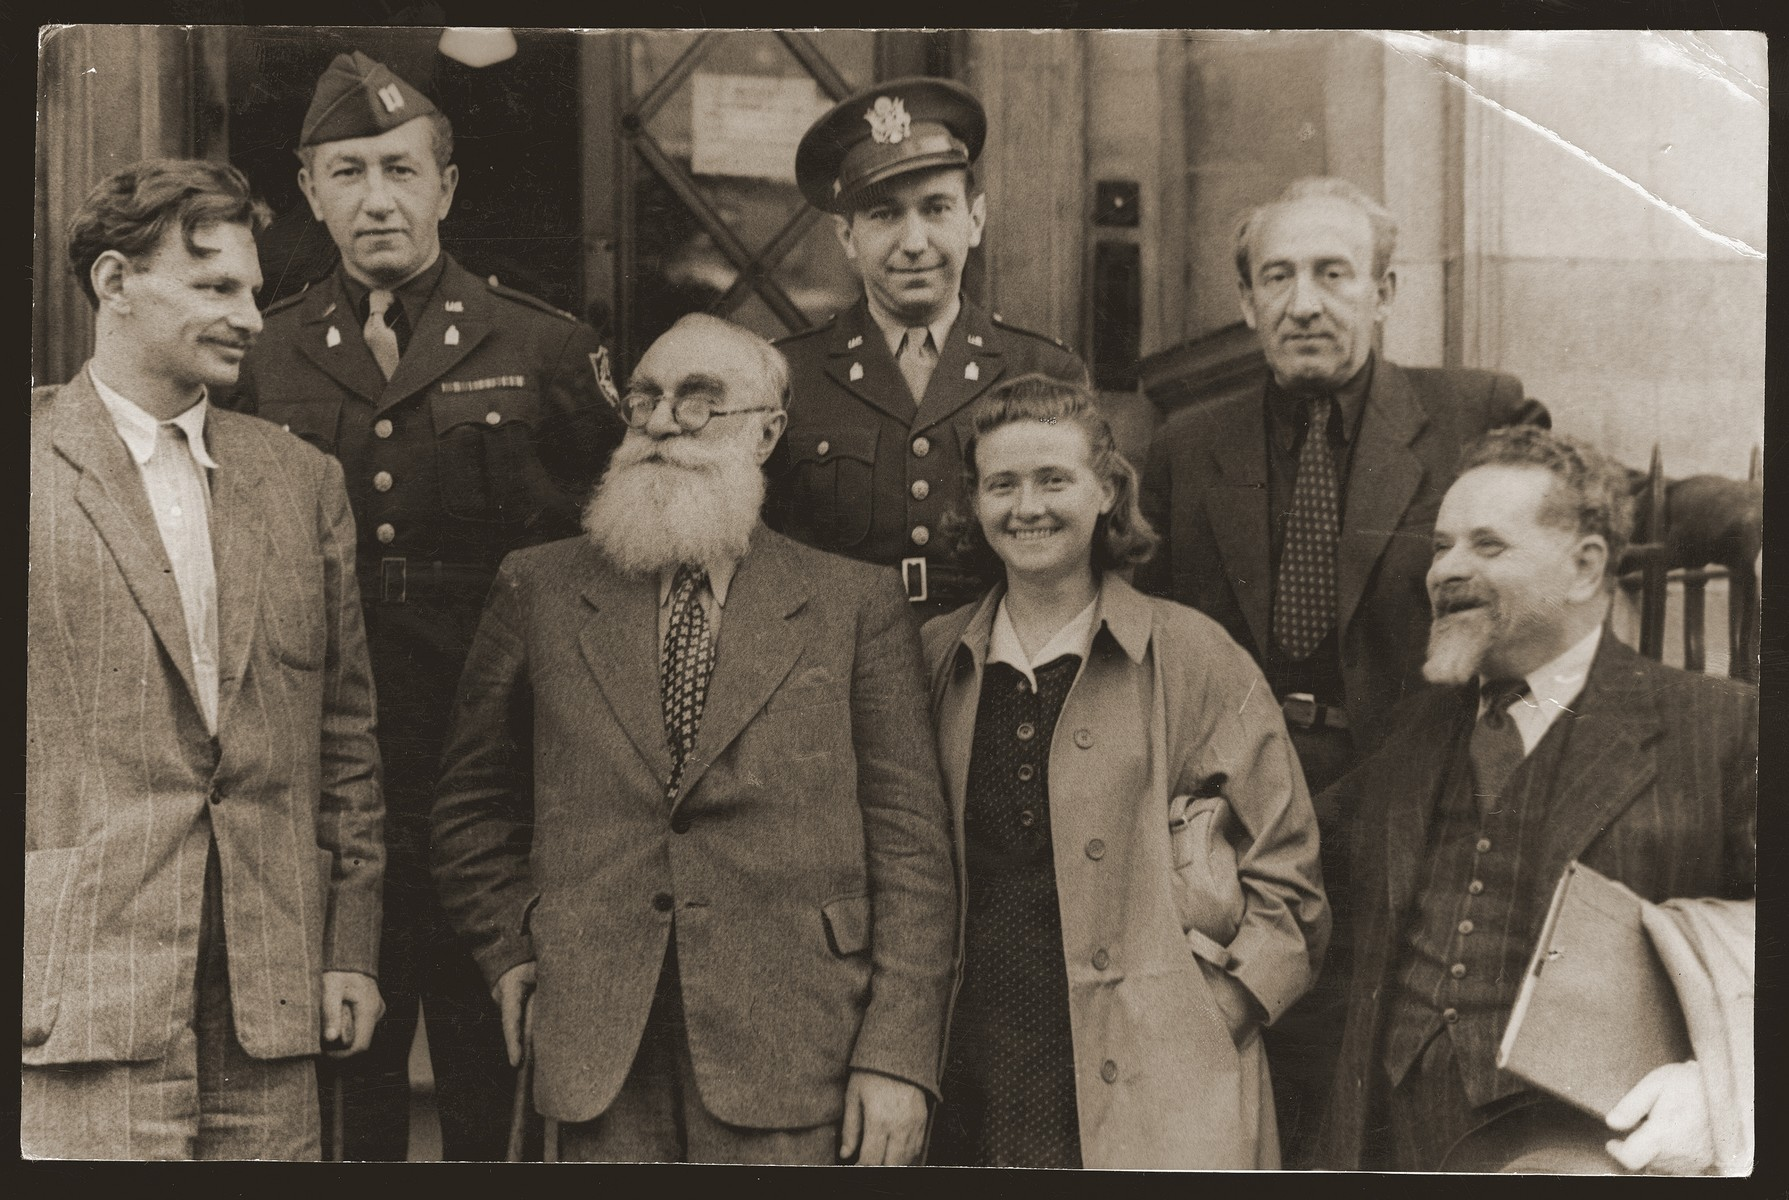 Group portrait of delegates to the World Zionist Conference in London.    Pictured in the front row, from left to right, are: Yitzhak Zuckerman, Dr. Emil Sommerstein, Haika Grosman and Yitzhak Gruenbaum.